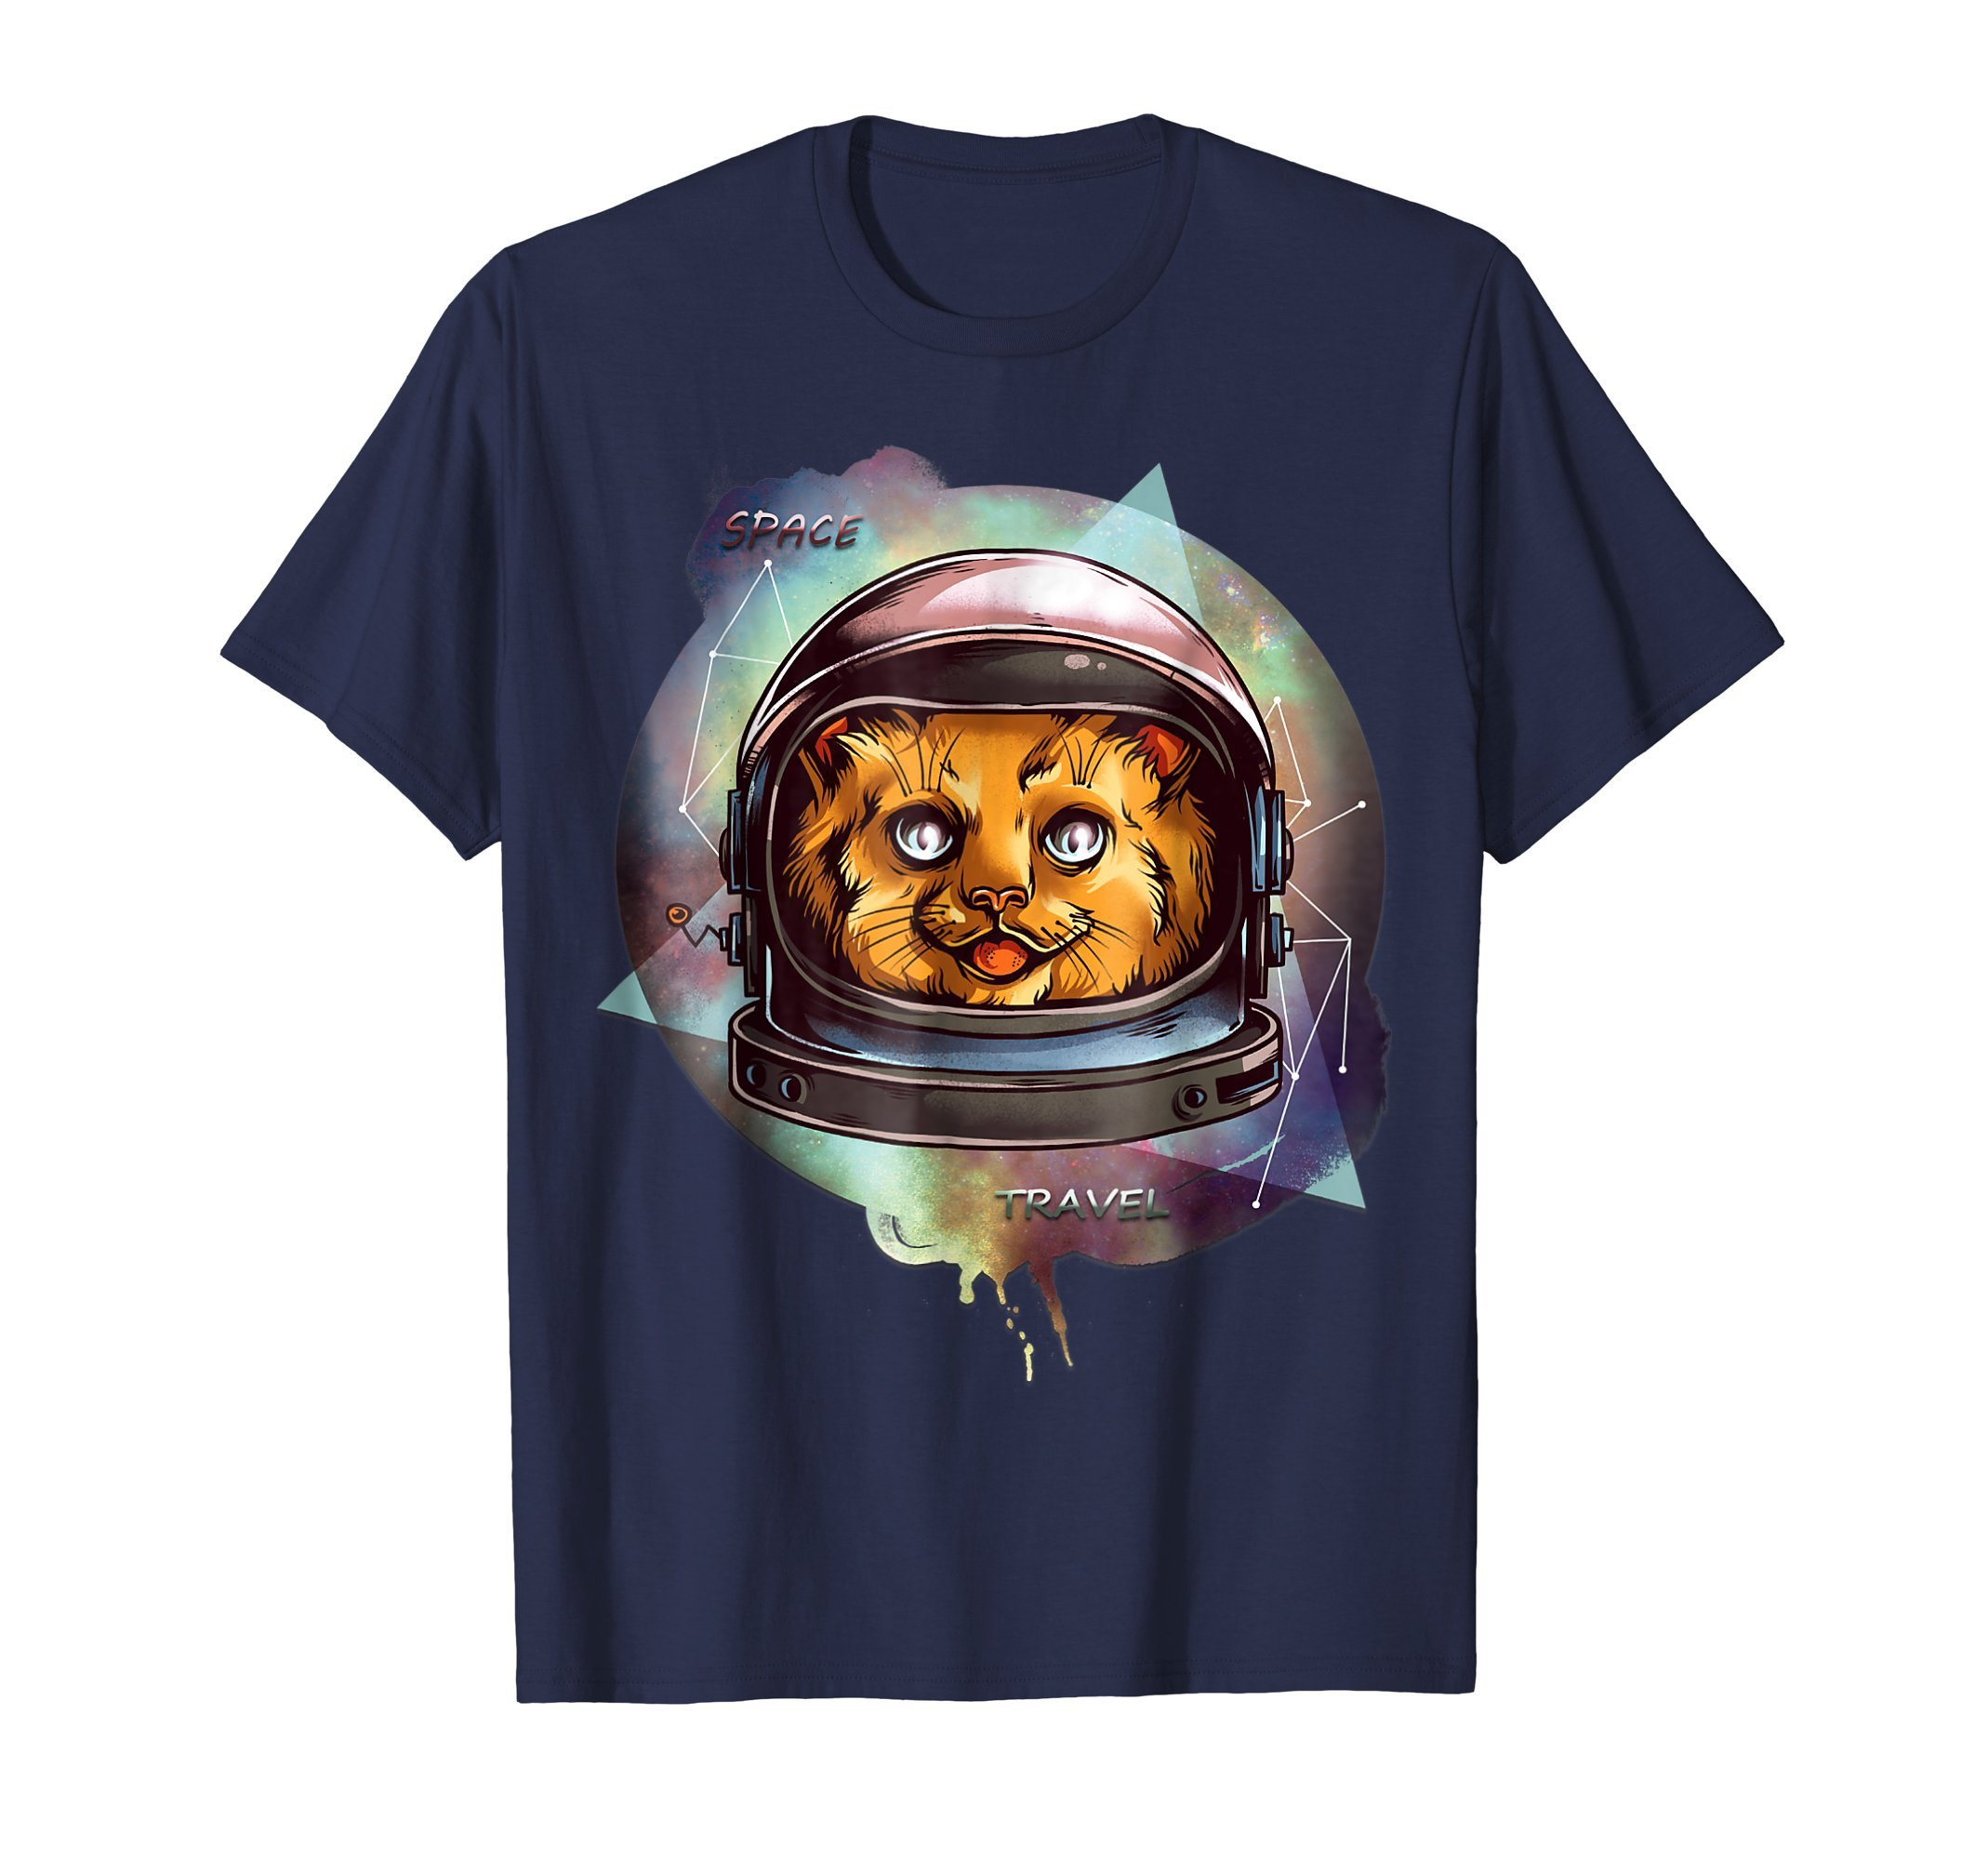 Cat Tshirt funny gift AND SPACE TRAVEL 2020 America